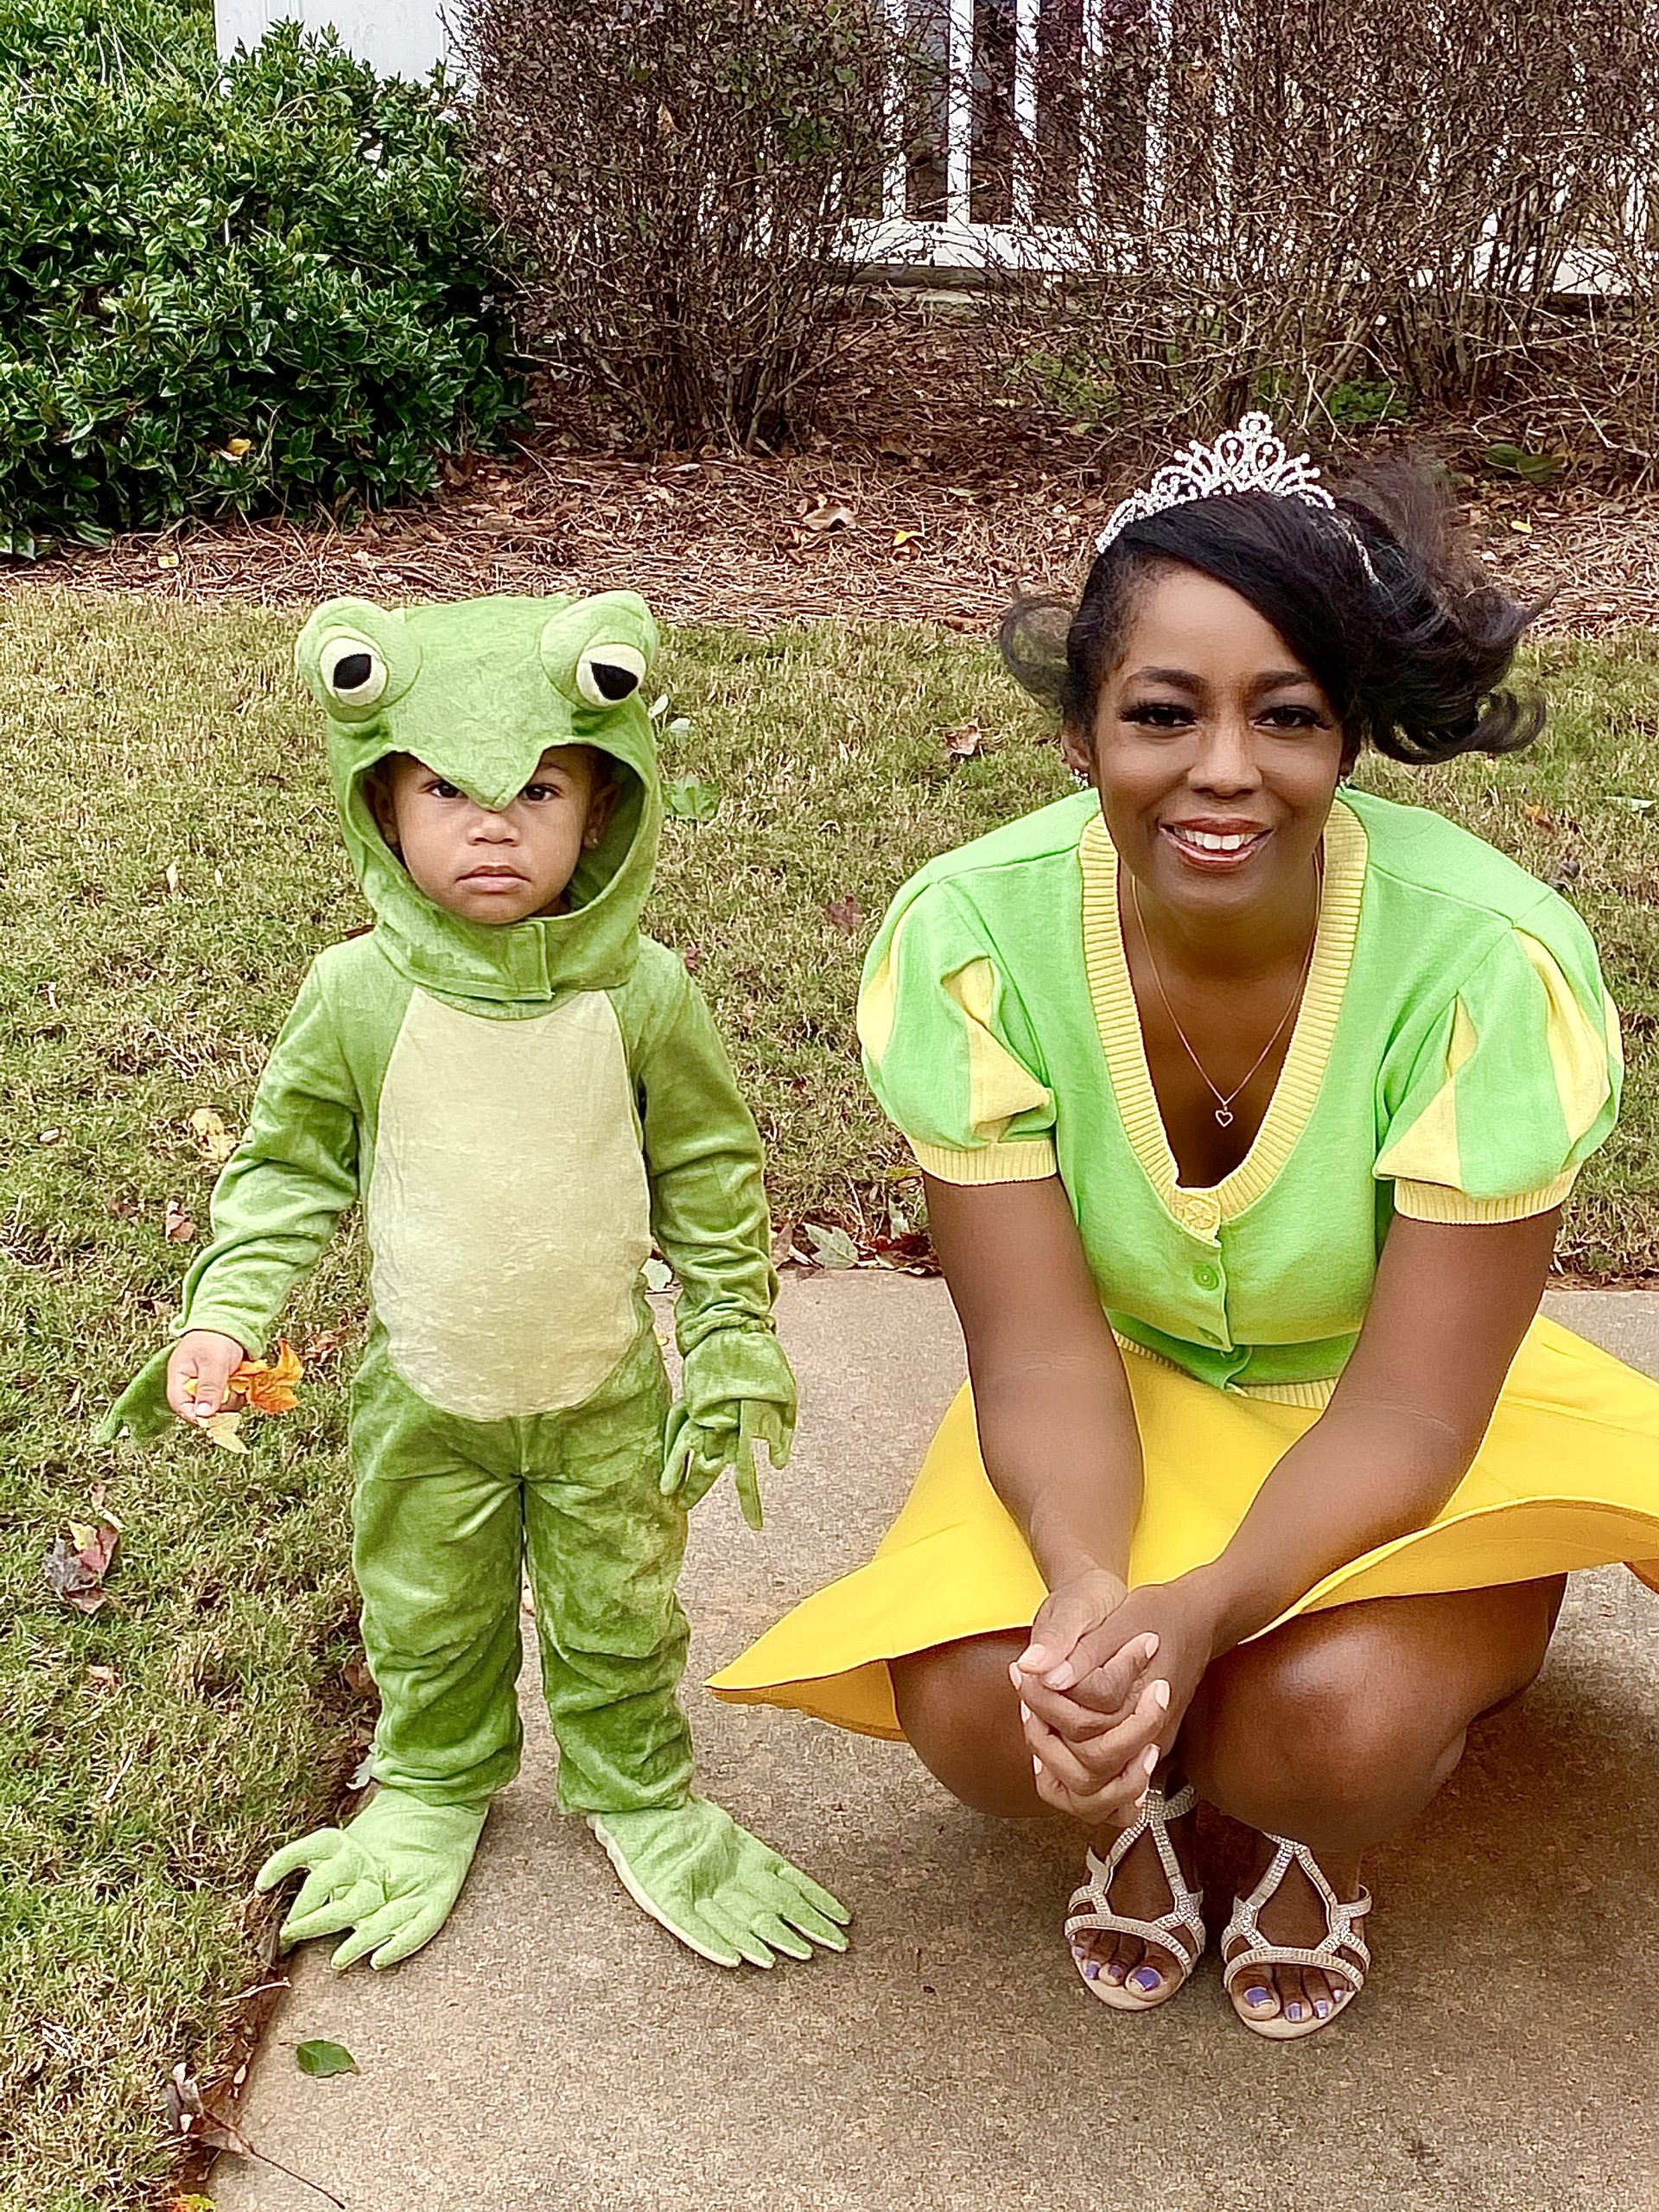 Our Style: Baby Legend And I 'The Princess And The Frog'